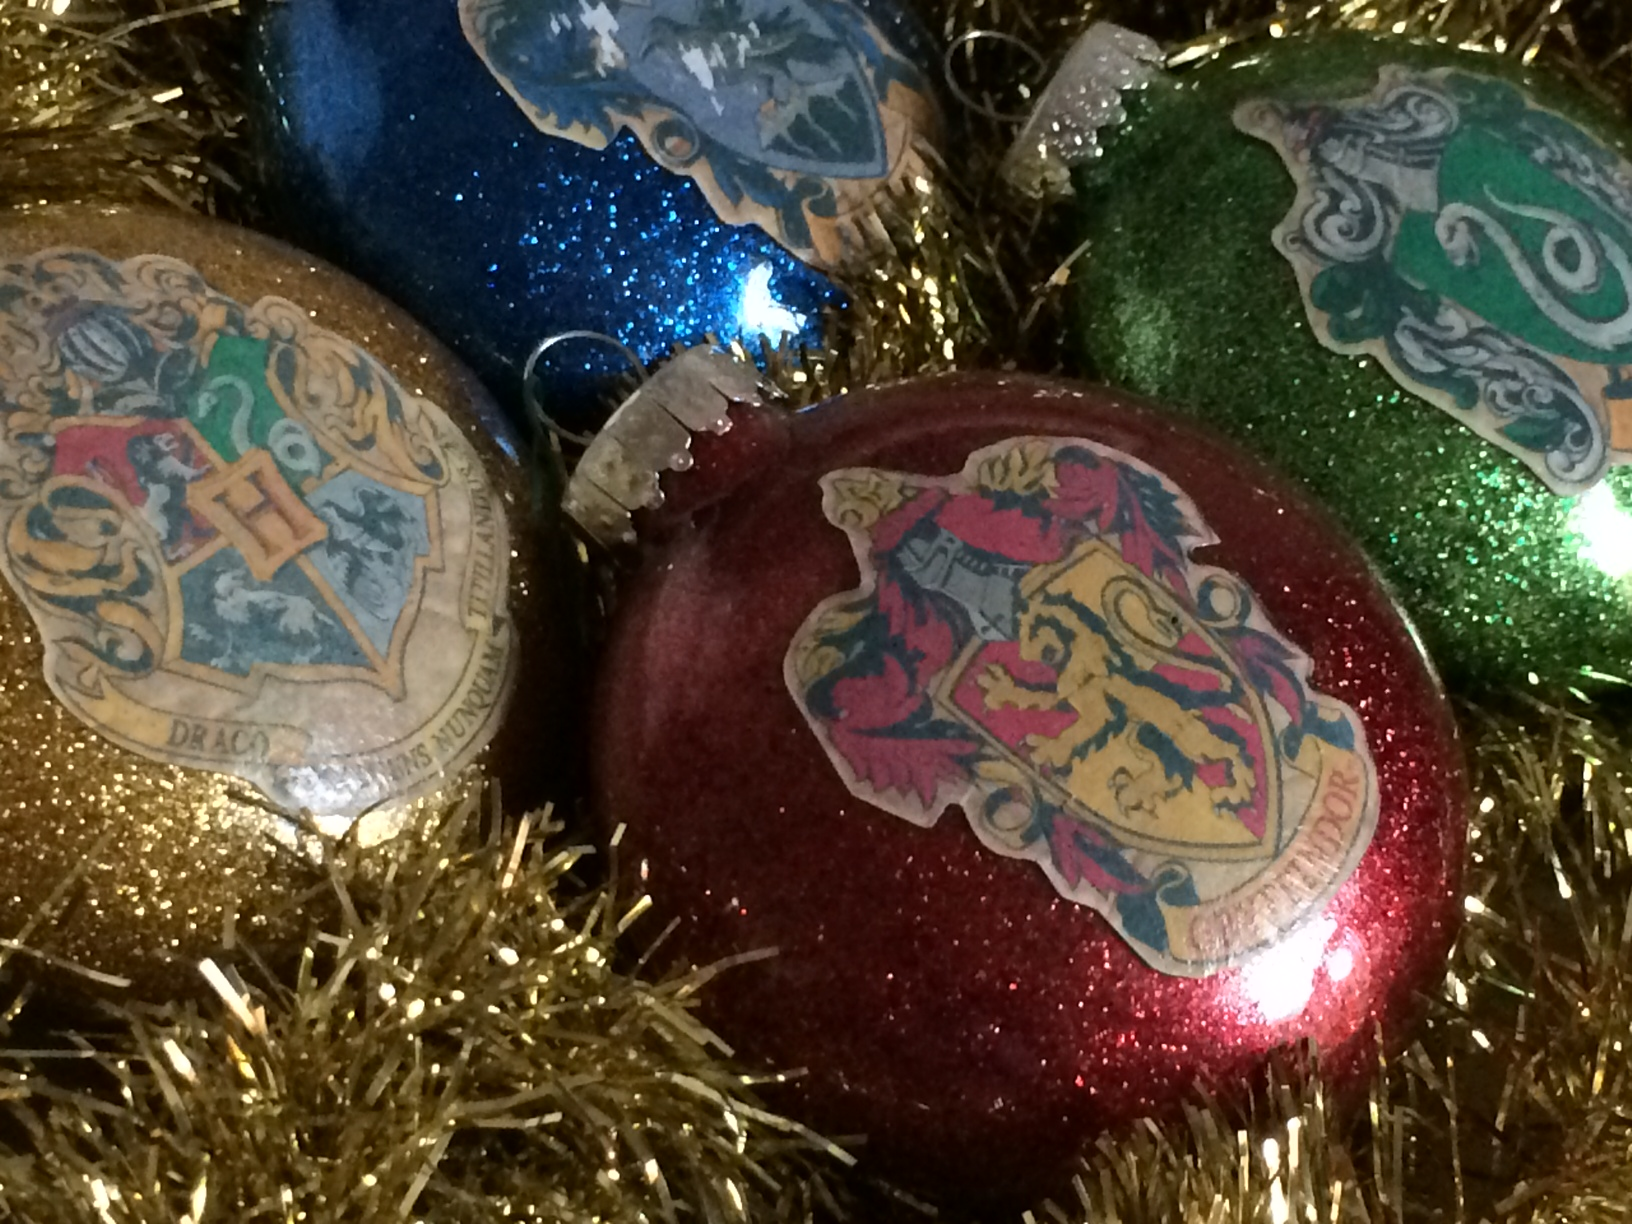 Yearly christmas ornaments - Harry Potter Christmas Ornaments